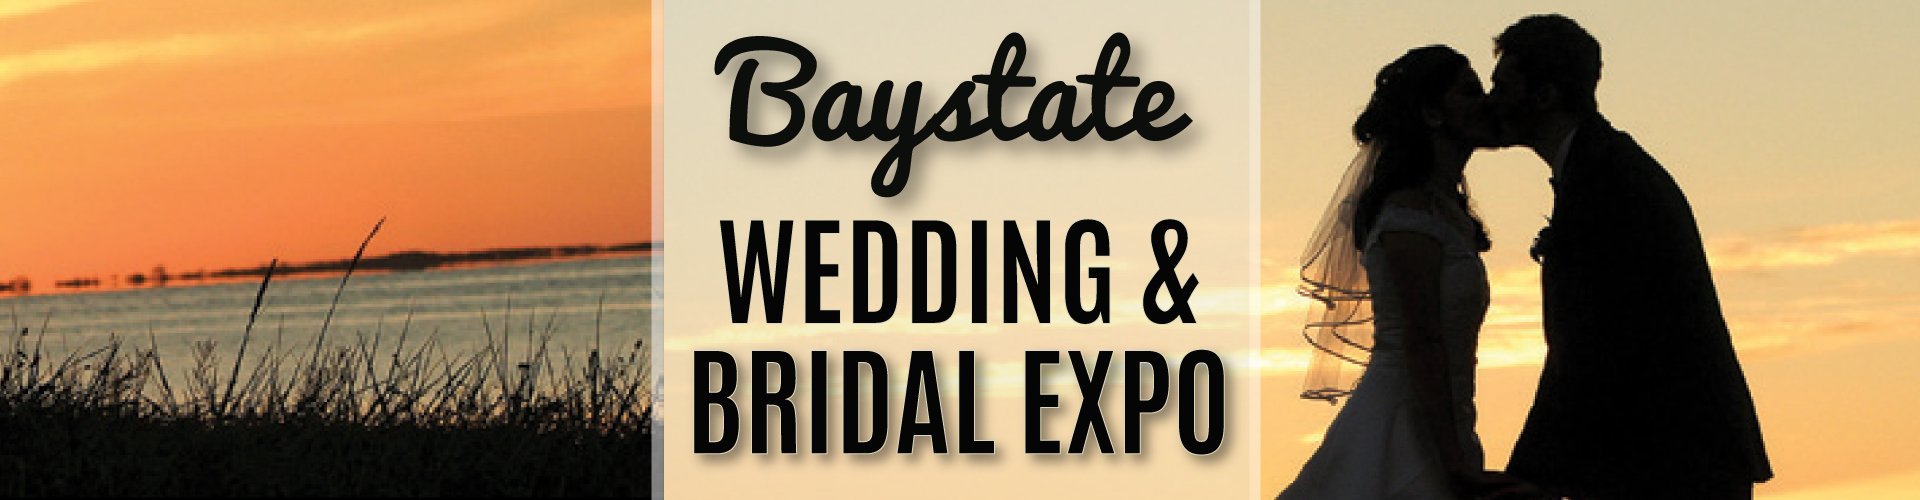 baystate boston wedding & bridal expo;